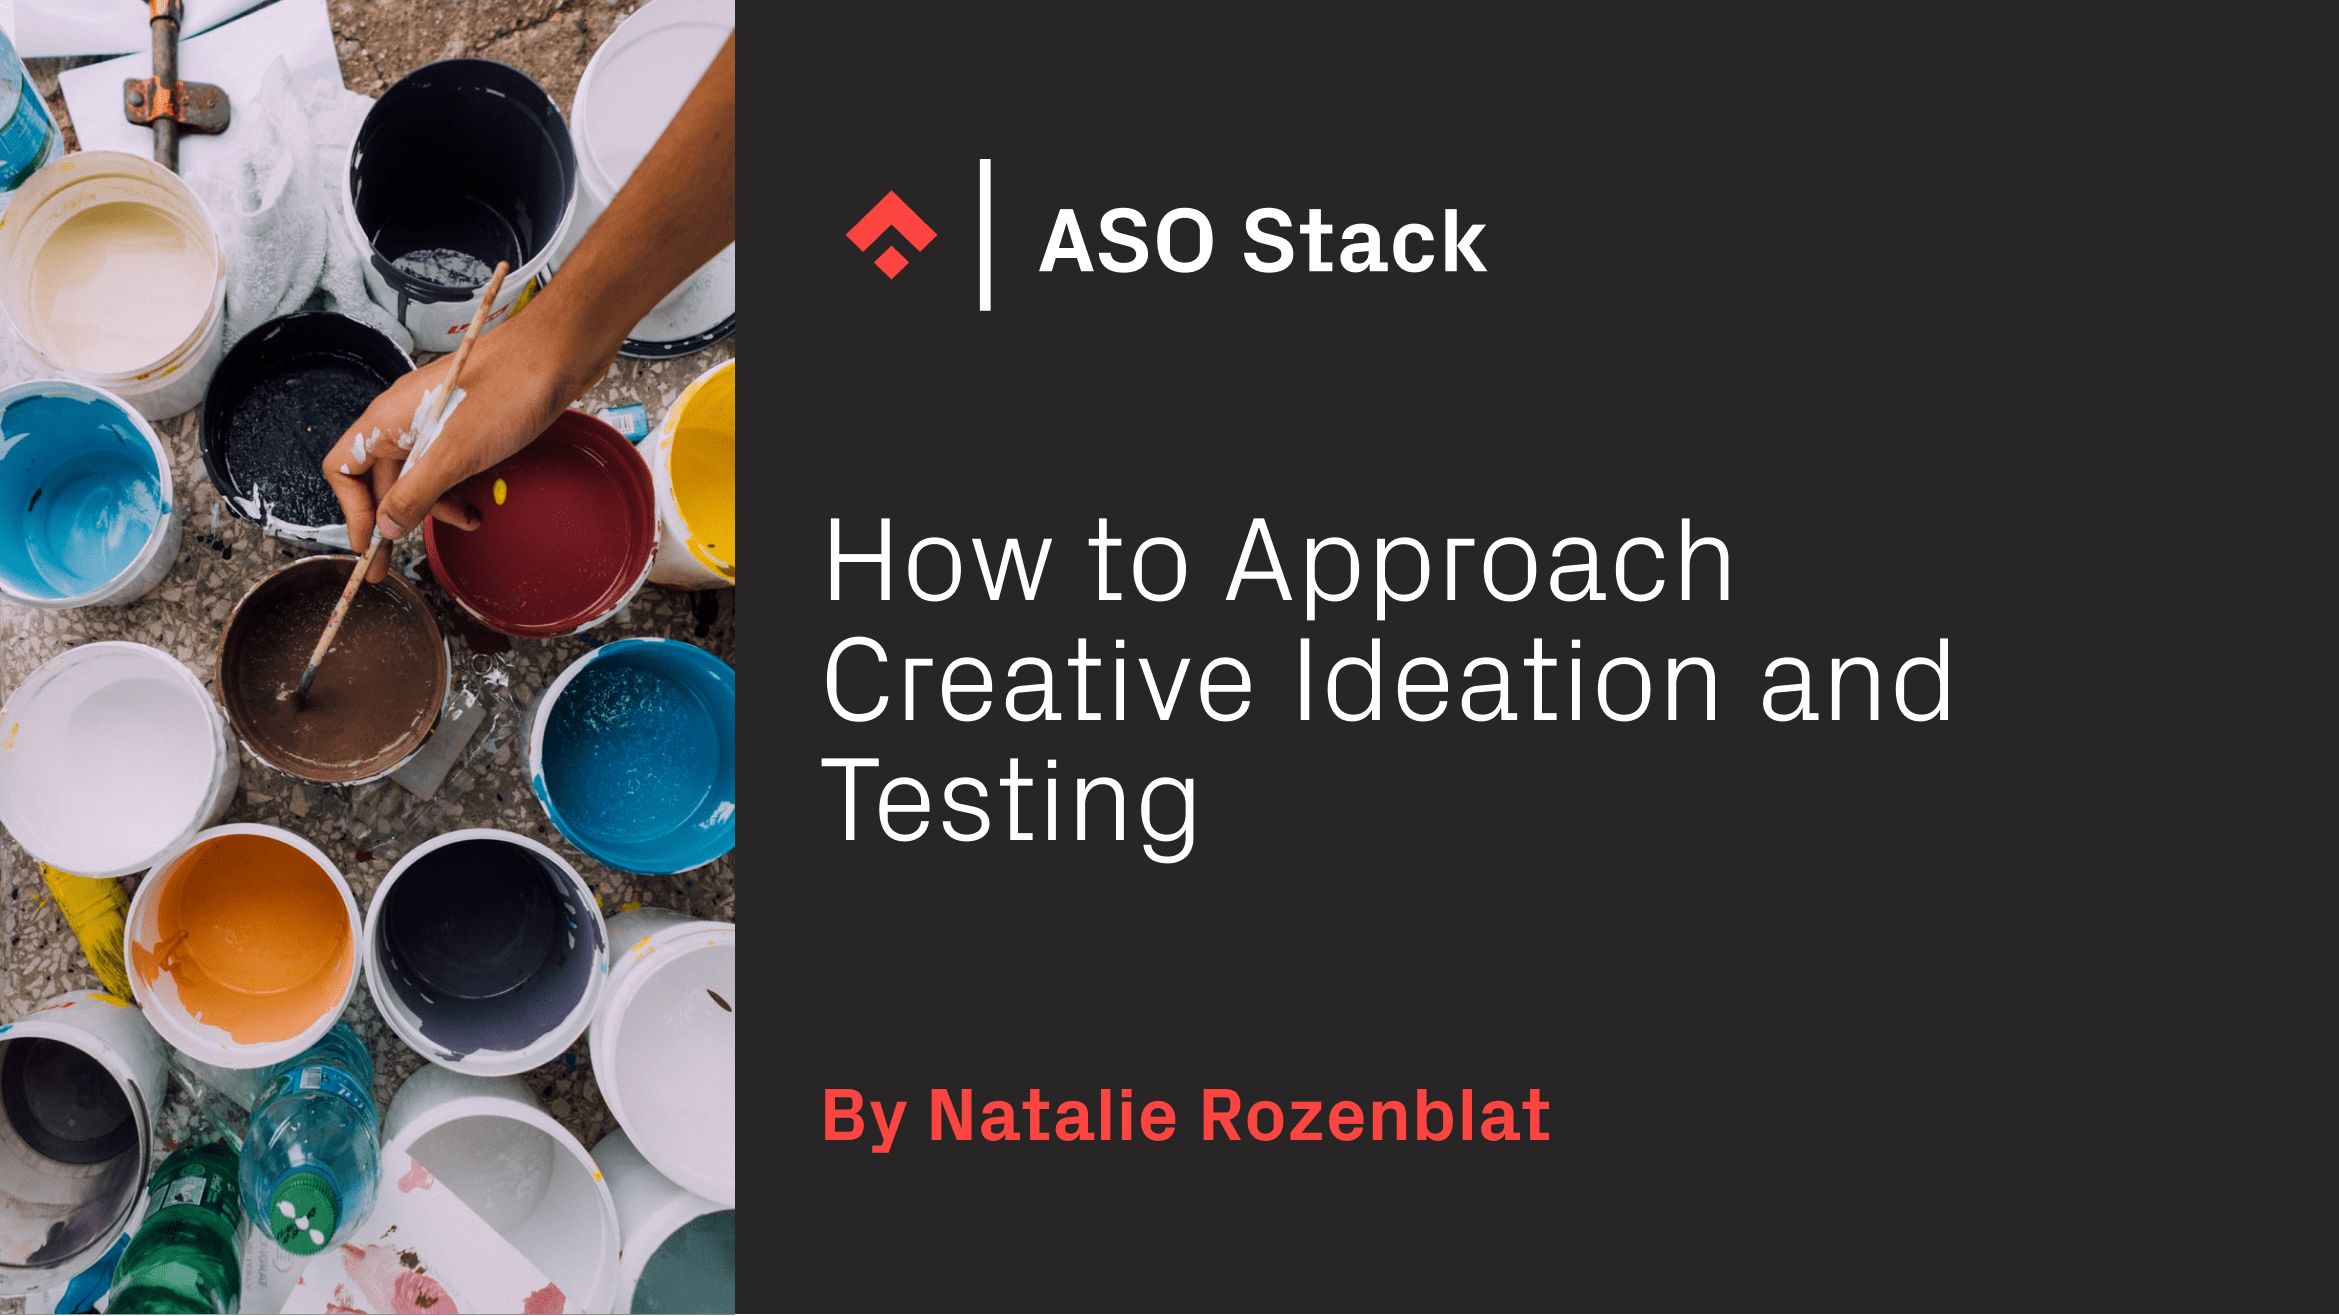 How to Approach Creative Ideation and Testing